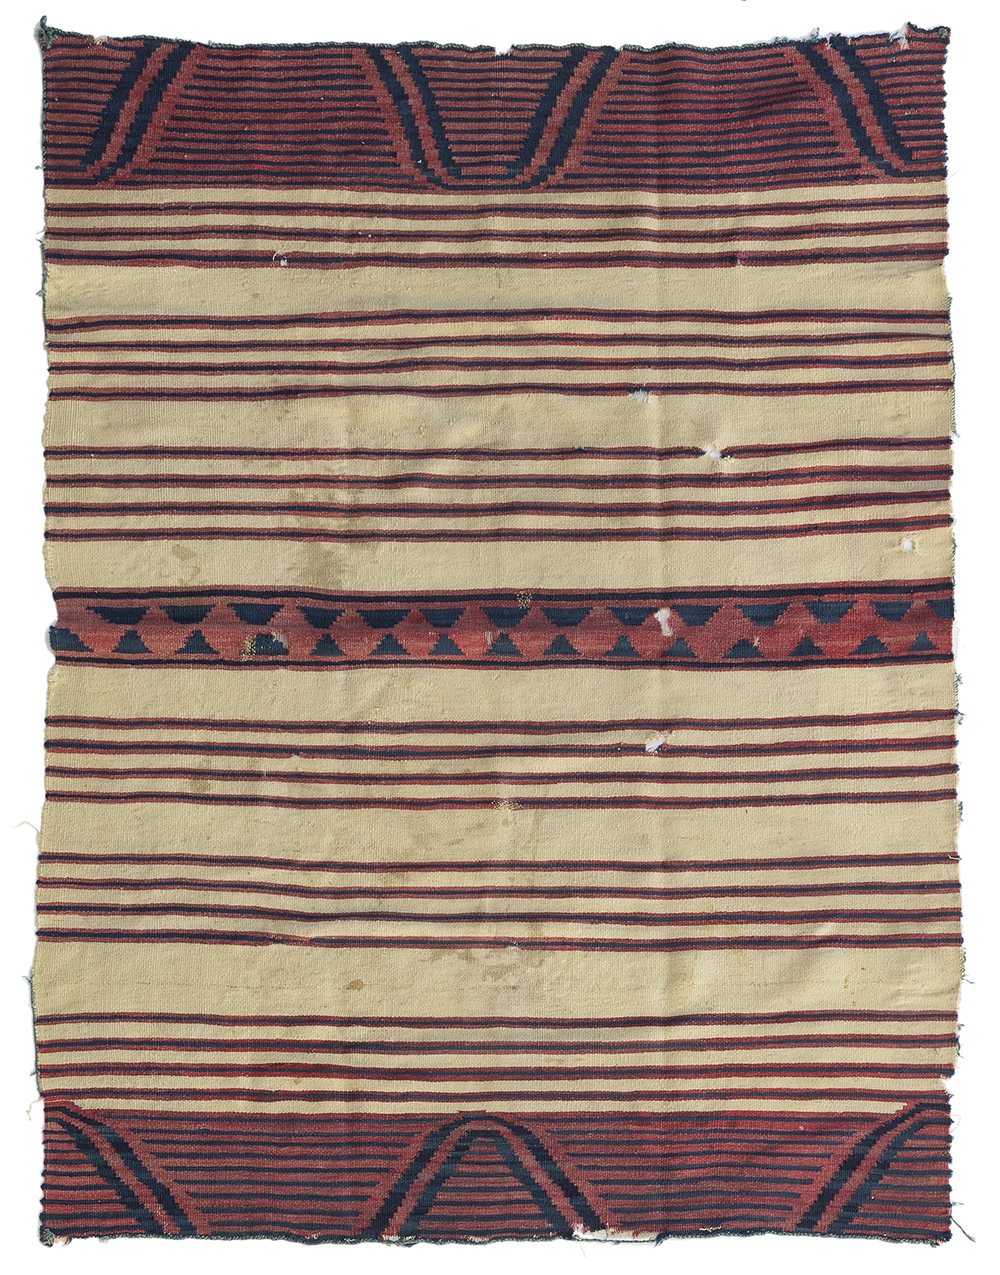 Navajo Classic Period Child's Wearing Blanket Which Earned $93,750